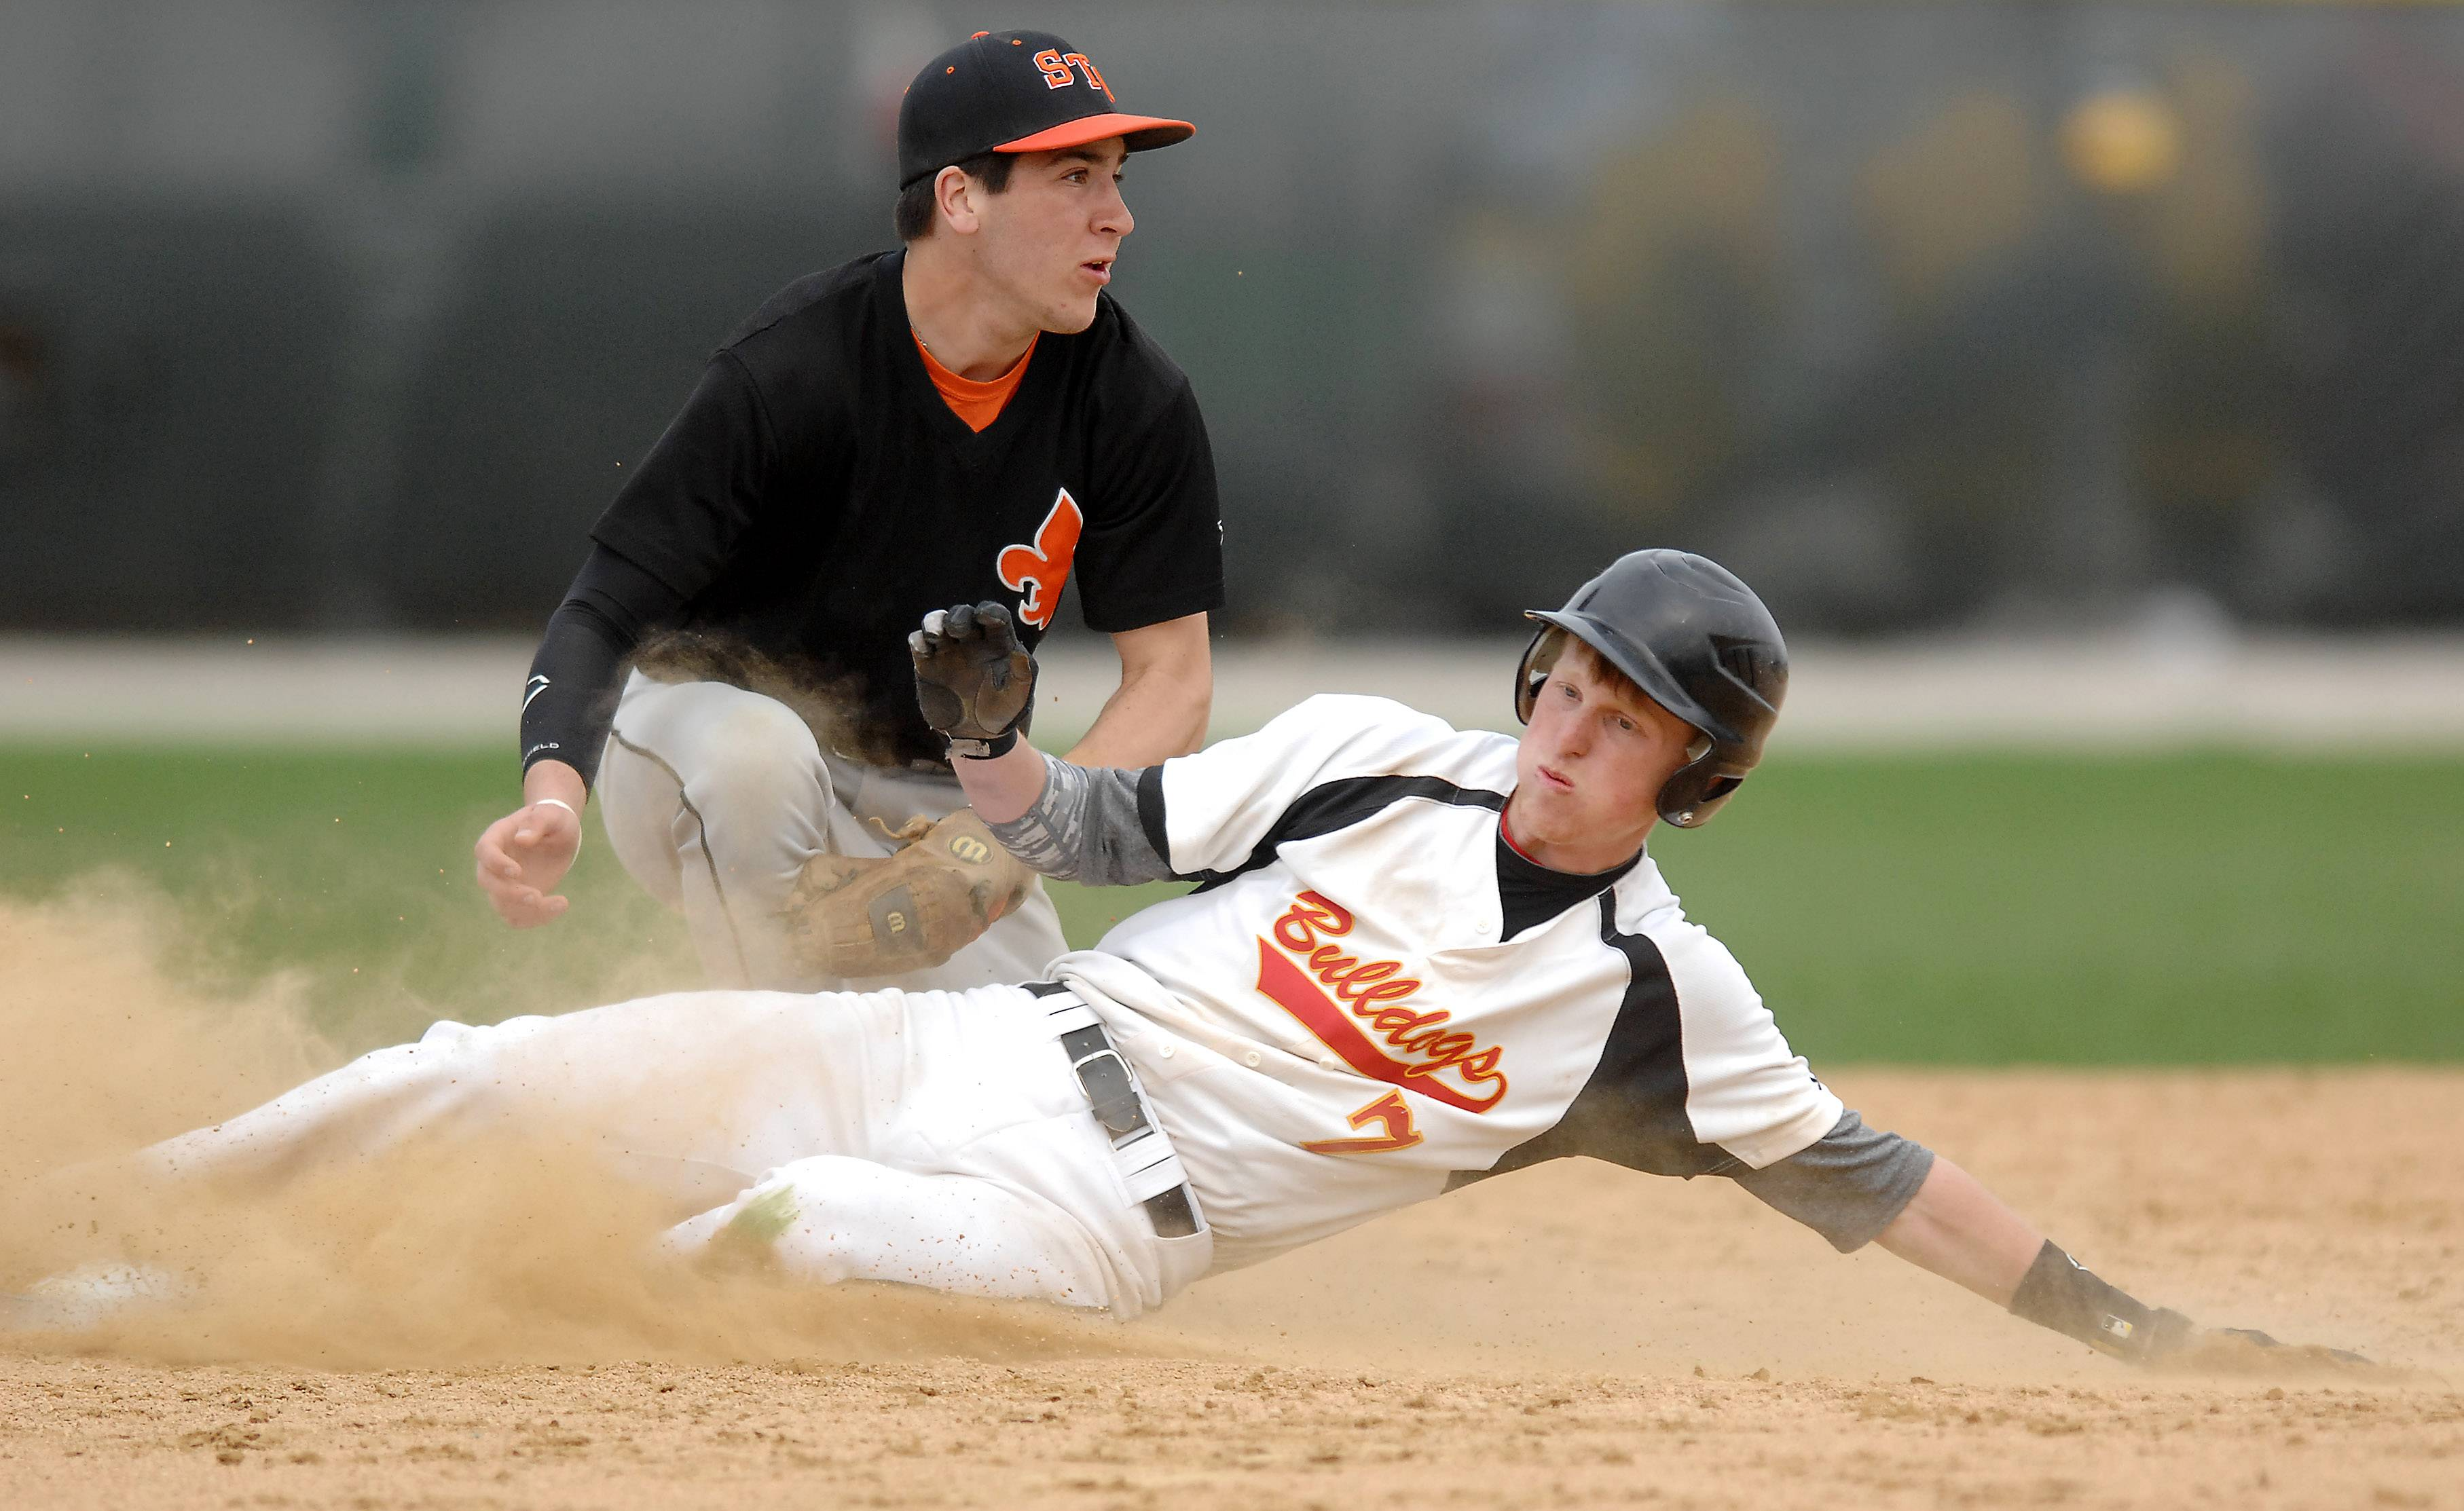 Batavia's Andrew Siegler (7) is tagged out by St. Charles East's Jake Asquini (7) while trying to stretch a single into a double during Thursday's game in Batavia.